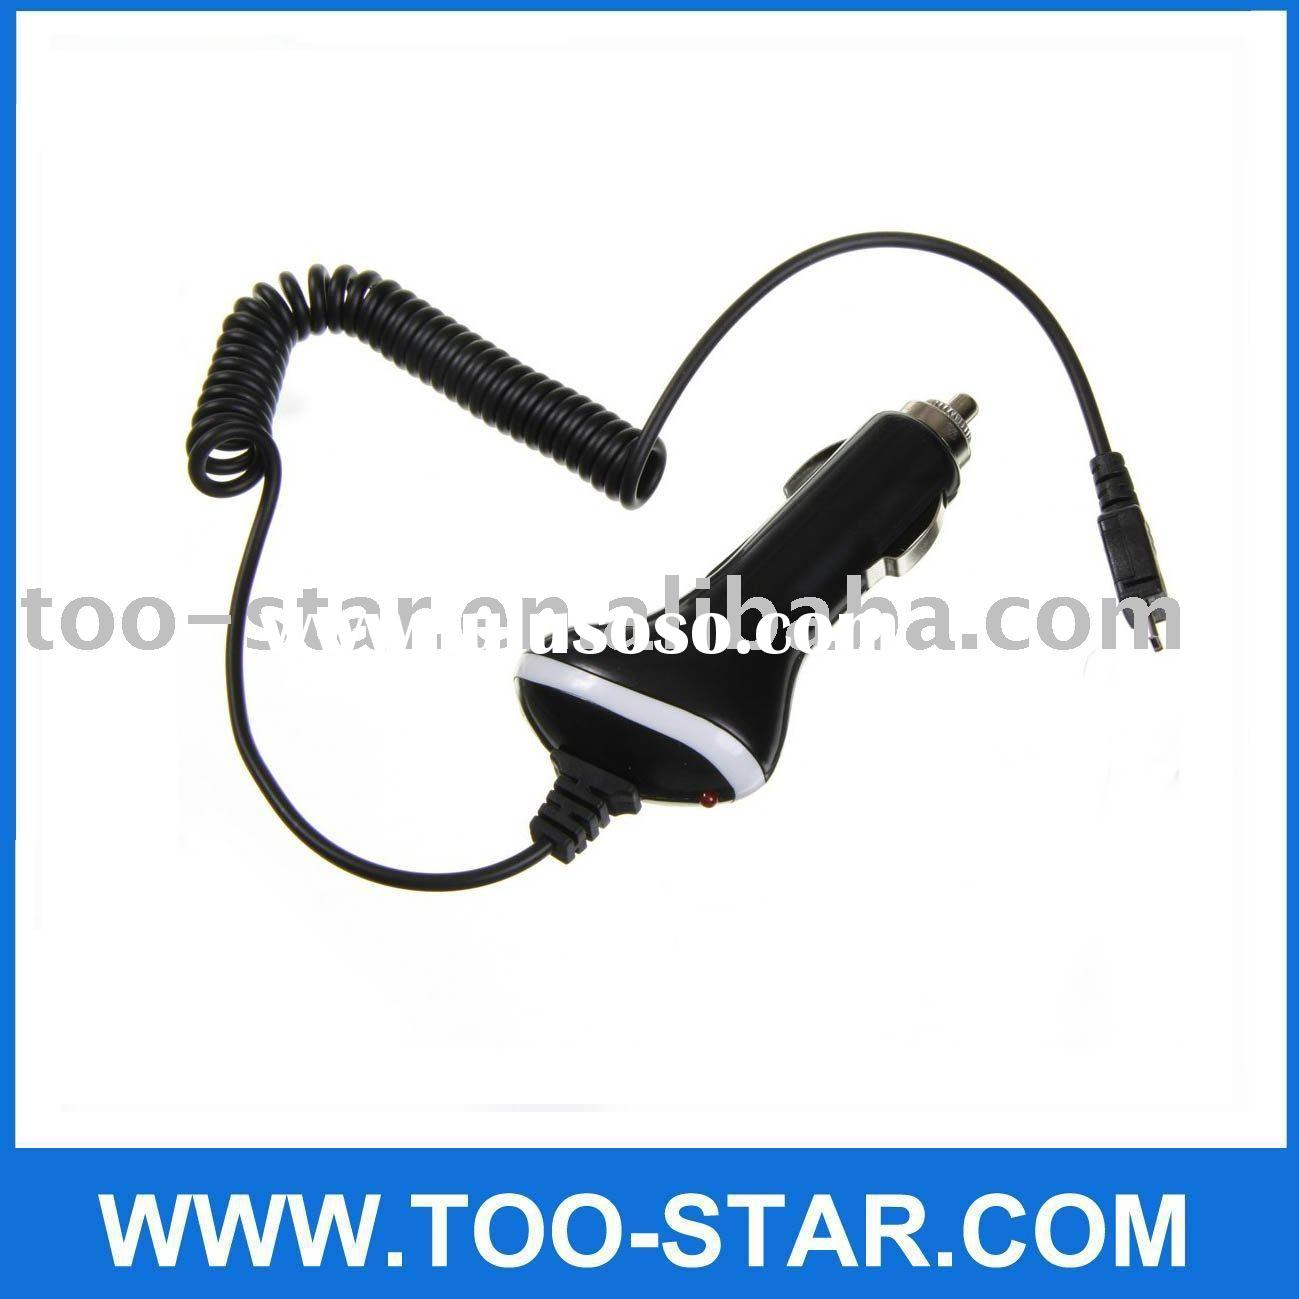 usb car charger for Blackberry